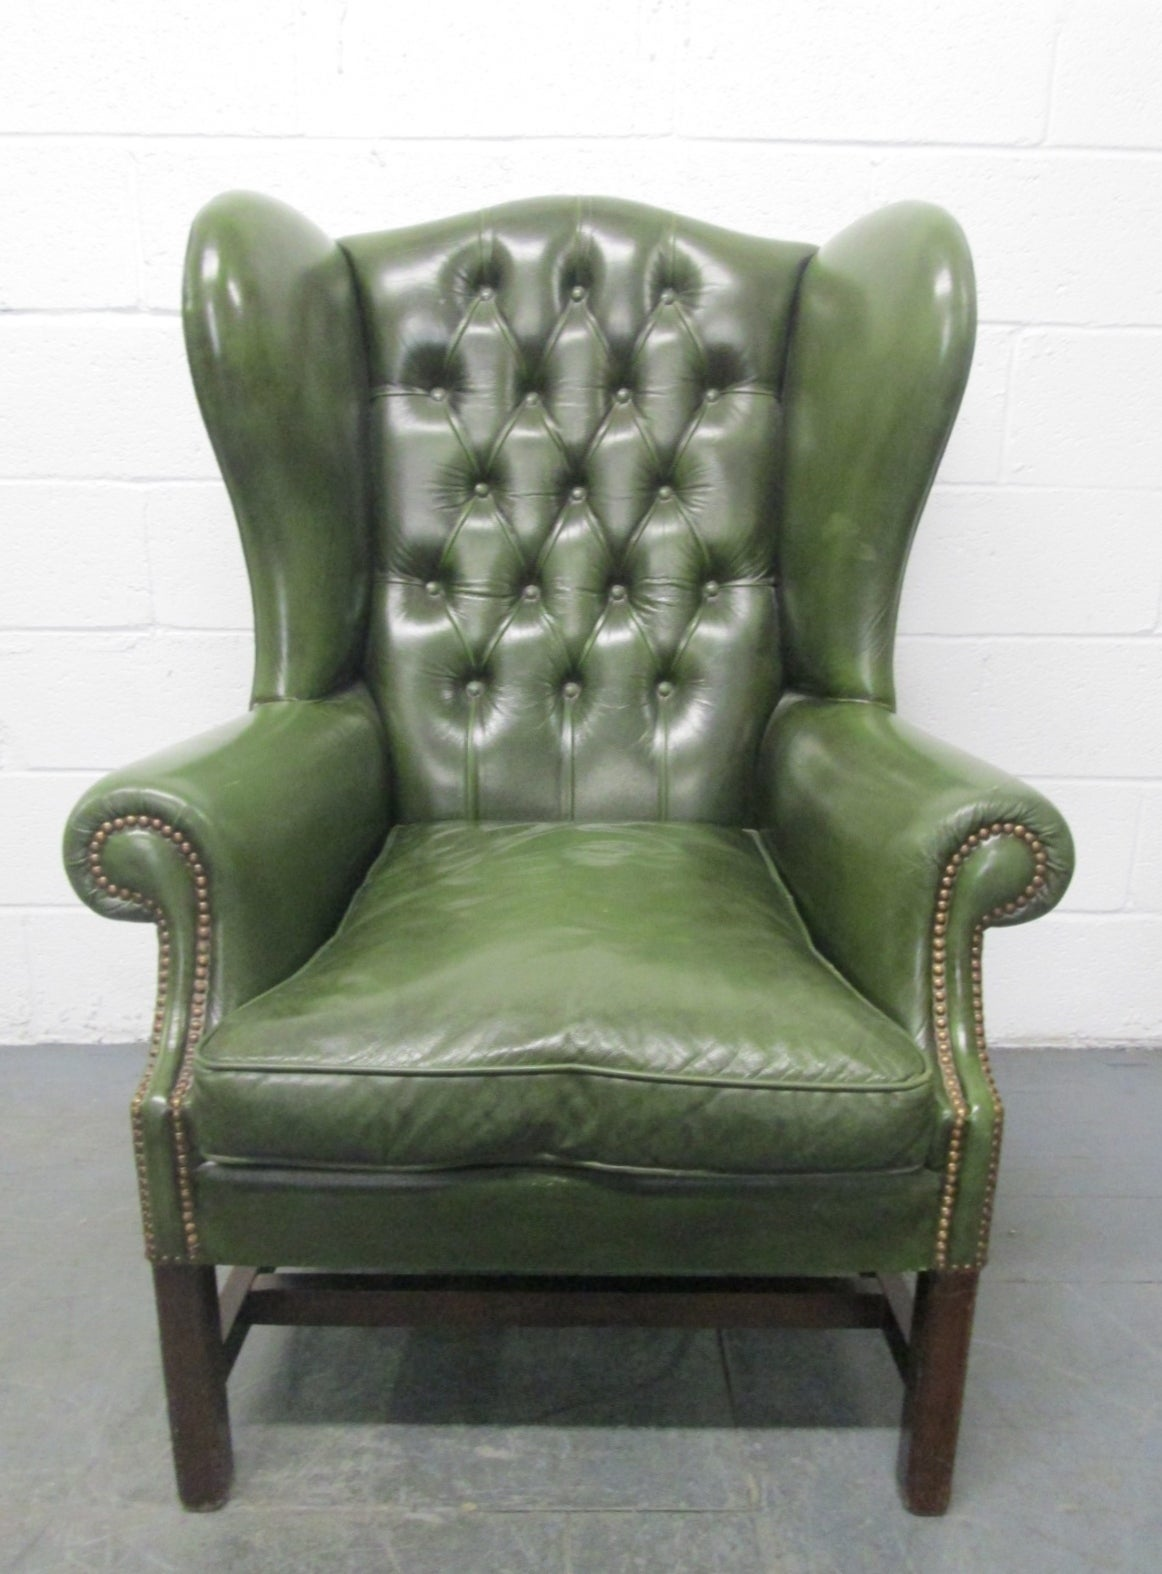 Antique leather armchair - Vintage Green Leather Tufted Wingback Chair 2